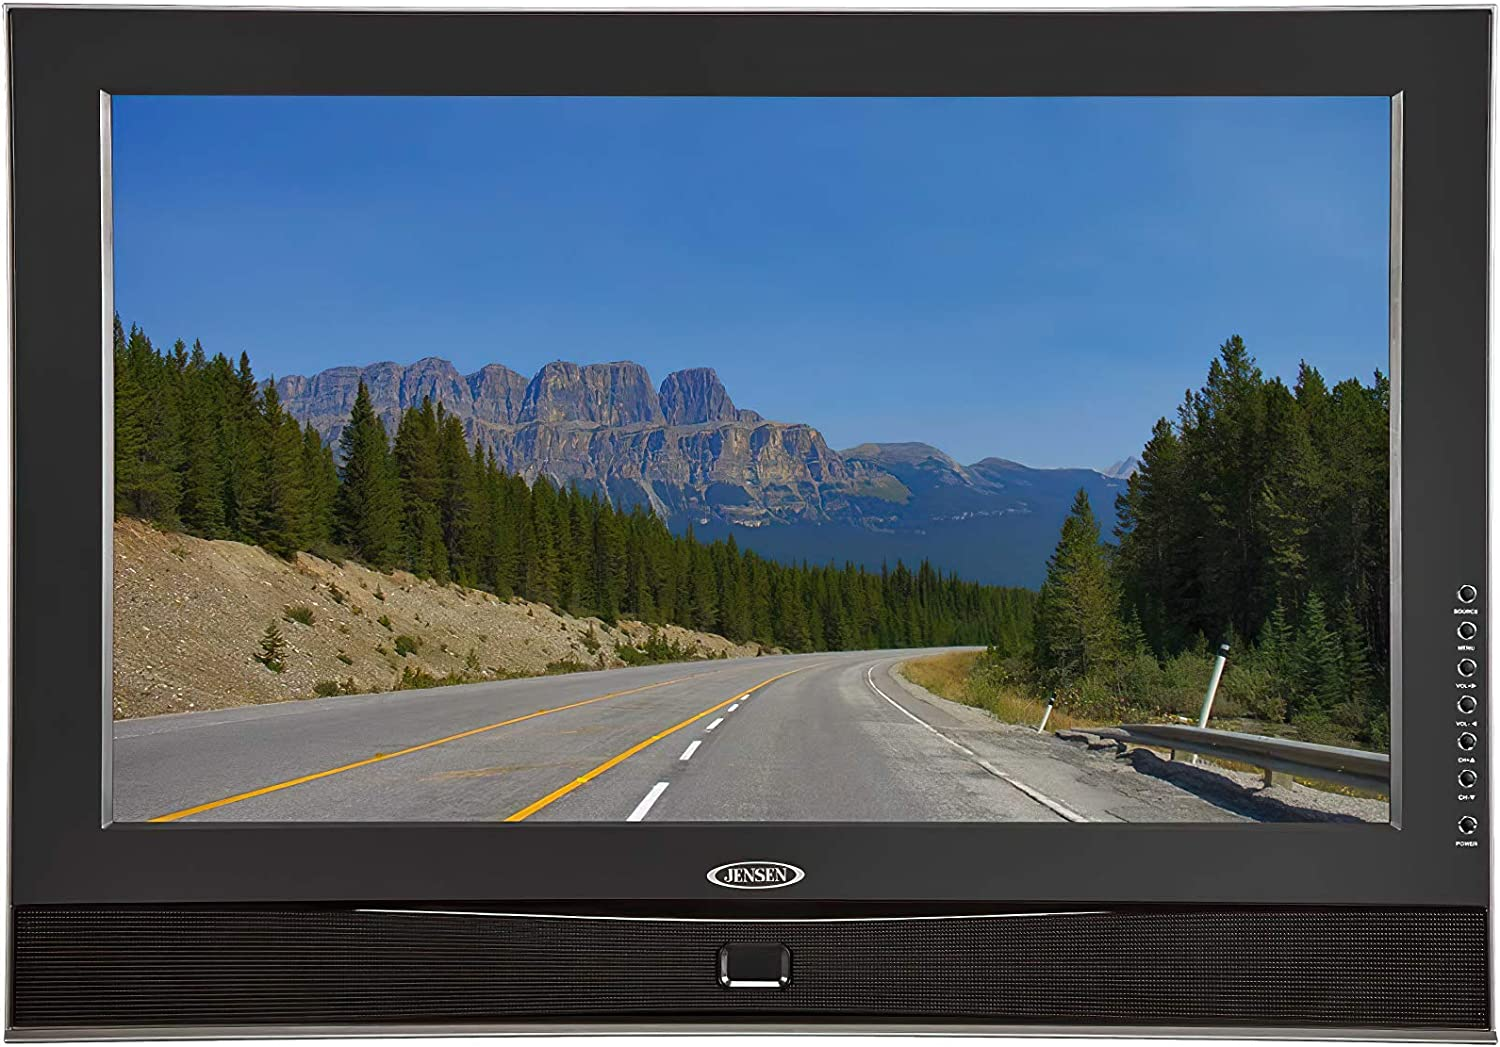 Jensen JE2608WVWM HD Ready 1080p 720p 26 Genuine Free Shipping R 70% OFF Outlet 110V AC Inch 480p